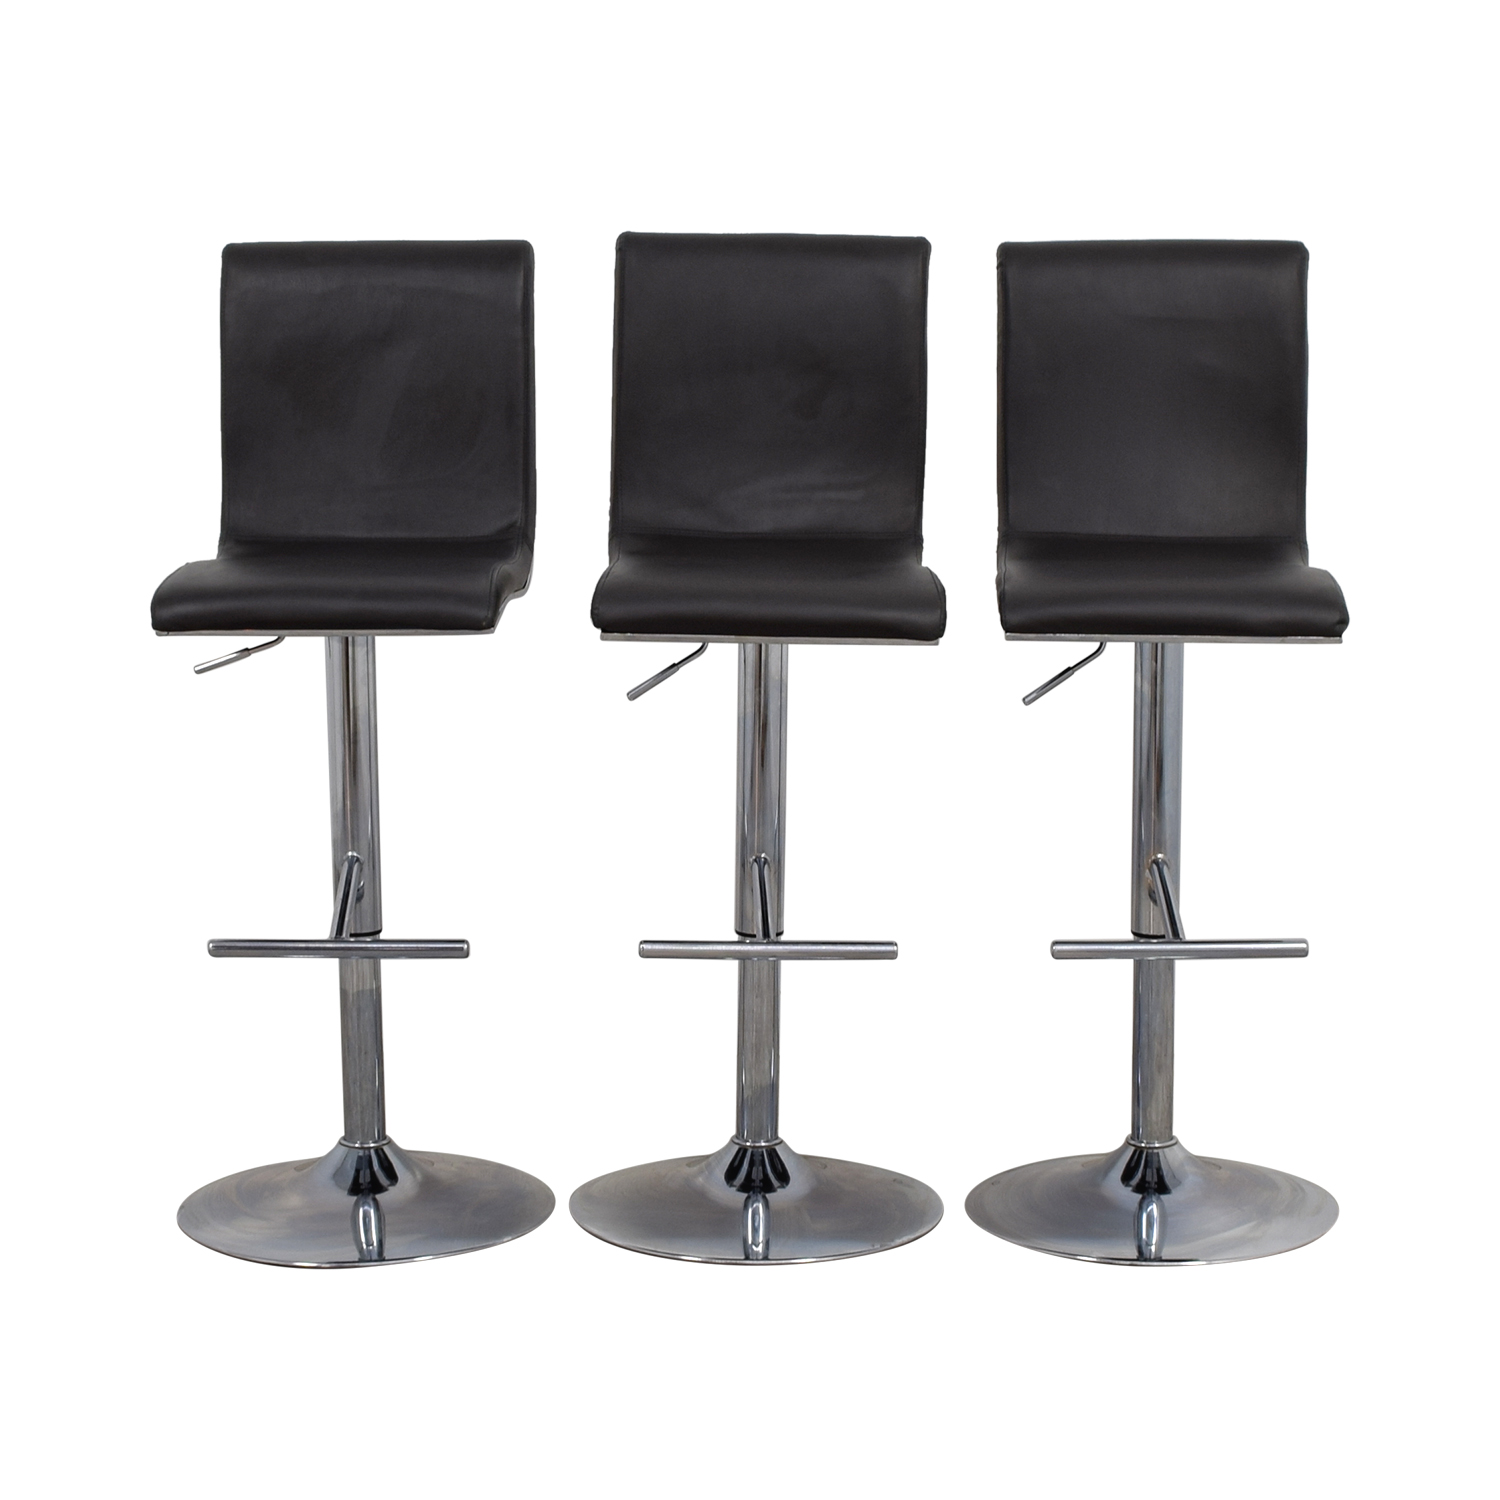 Lumi Source Lumi Source Grey Adjustable Bar Stools coupon